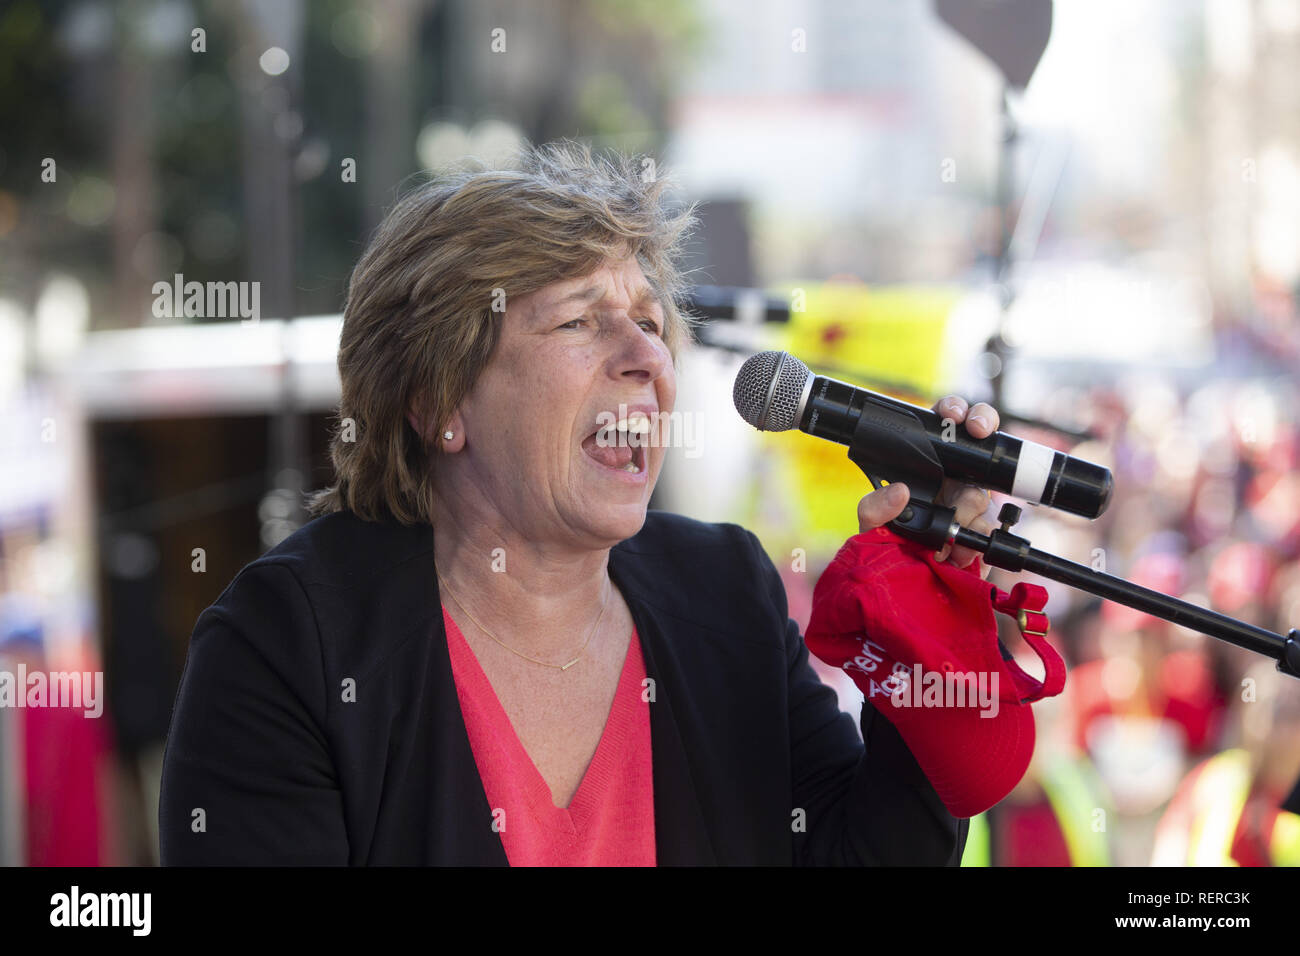 Los Angeles, California, USA. 22nd Jan, 2019. Randi Weingarten, president of the American Federation of Teachers, speaks to UTLA leaders and members at a rally celebrating the announcement of an agreement to end the LAUSD teachers strike on Tuesday, Jan. 22, 2019. Credit: Allison Zaucha/ZUMA Wire/Alamy Live News - Stock Image